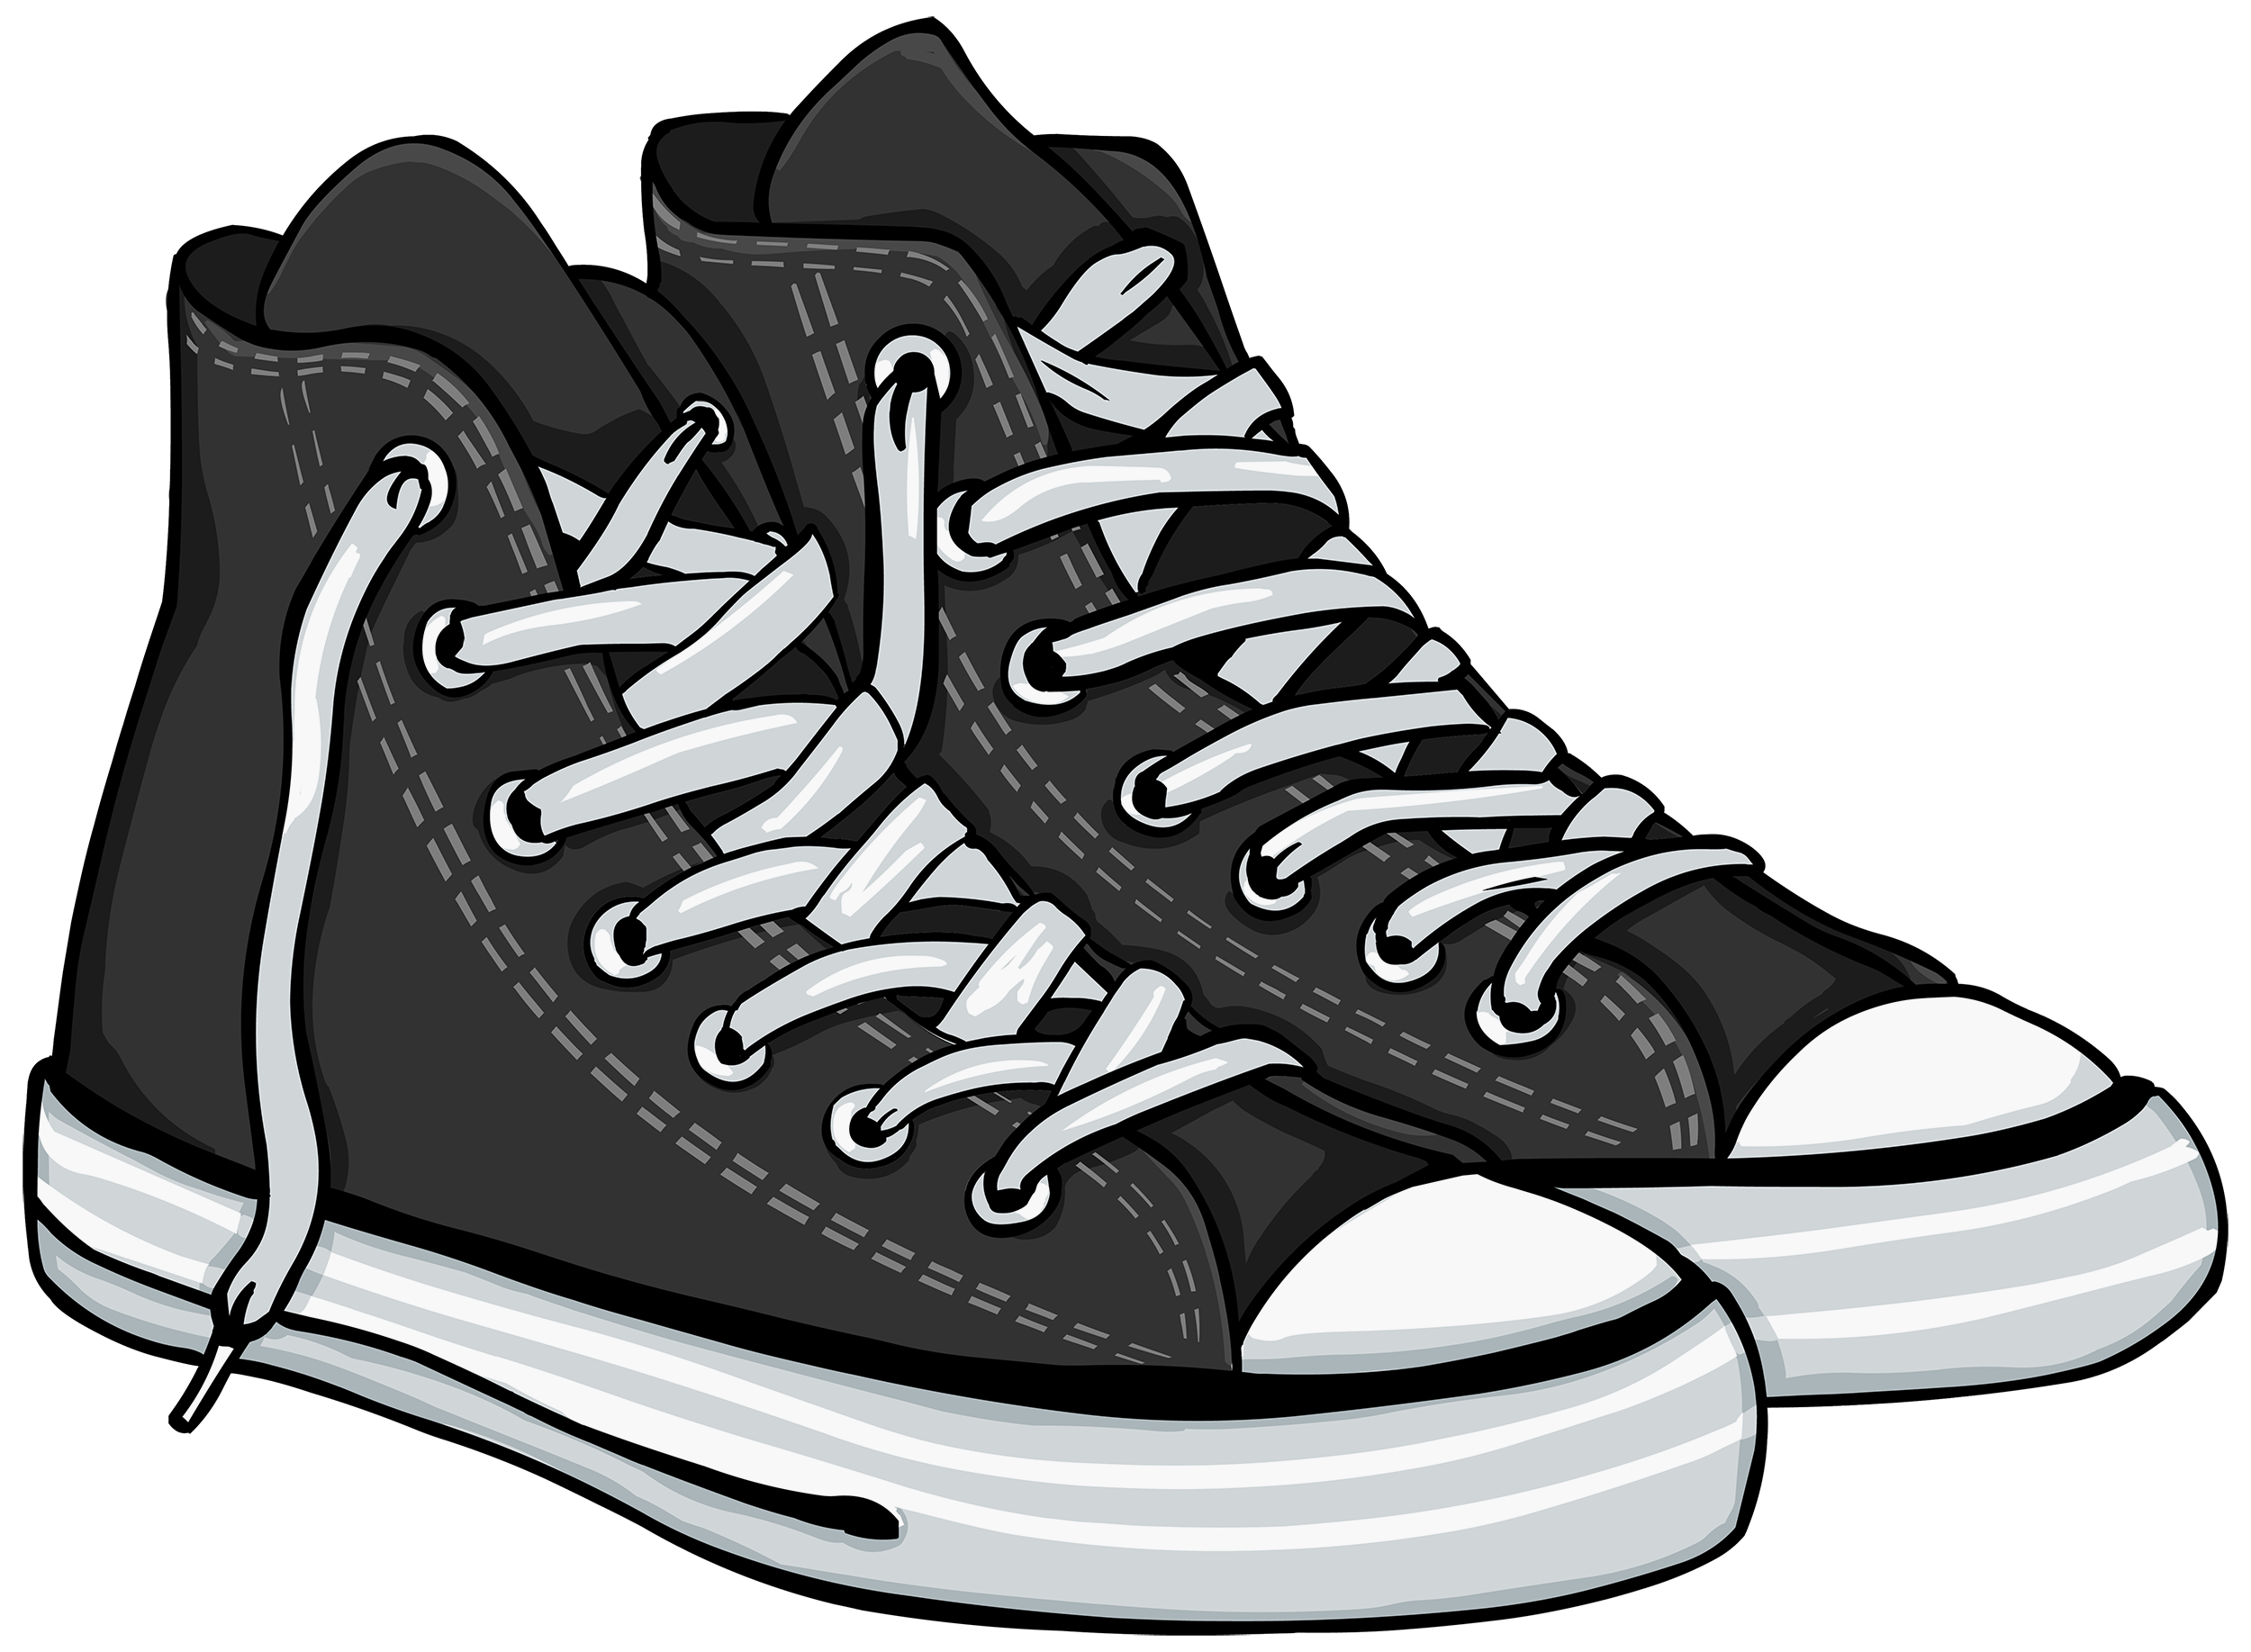 Feet with shoes clipart black and white clip art Tennis shoes clipart black and white collection | Images in 2019 ... clip art